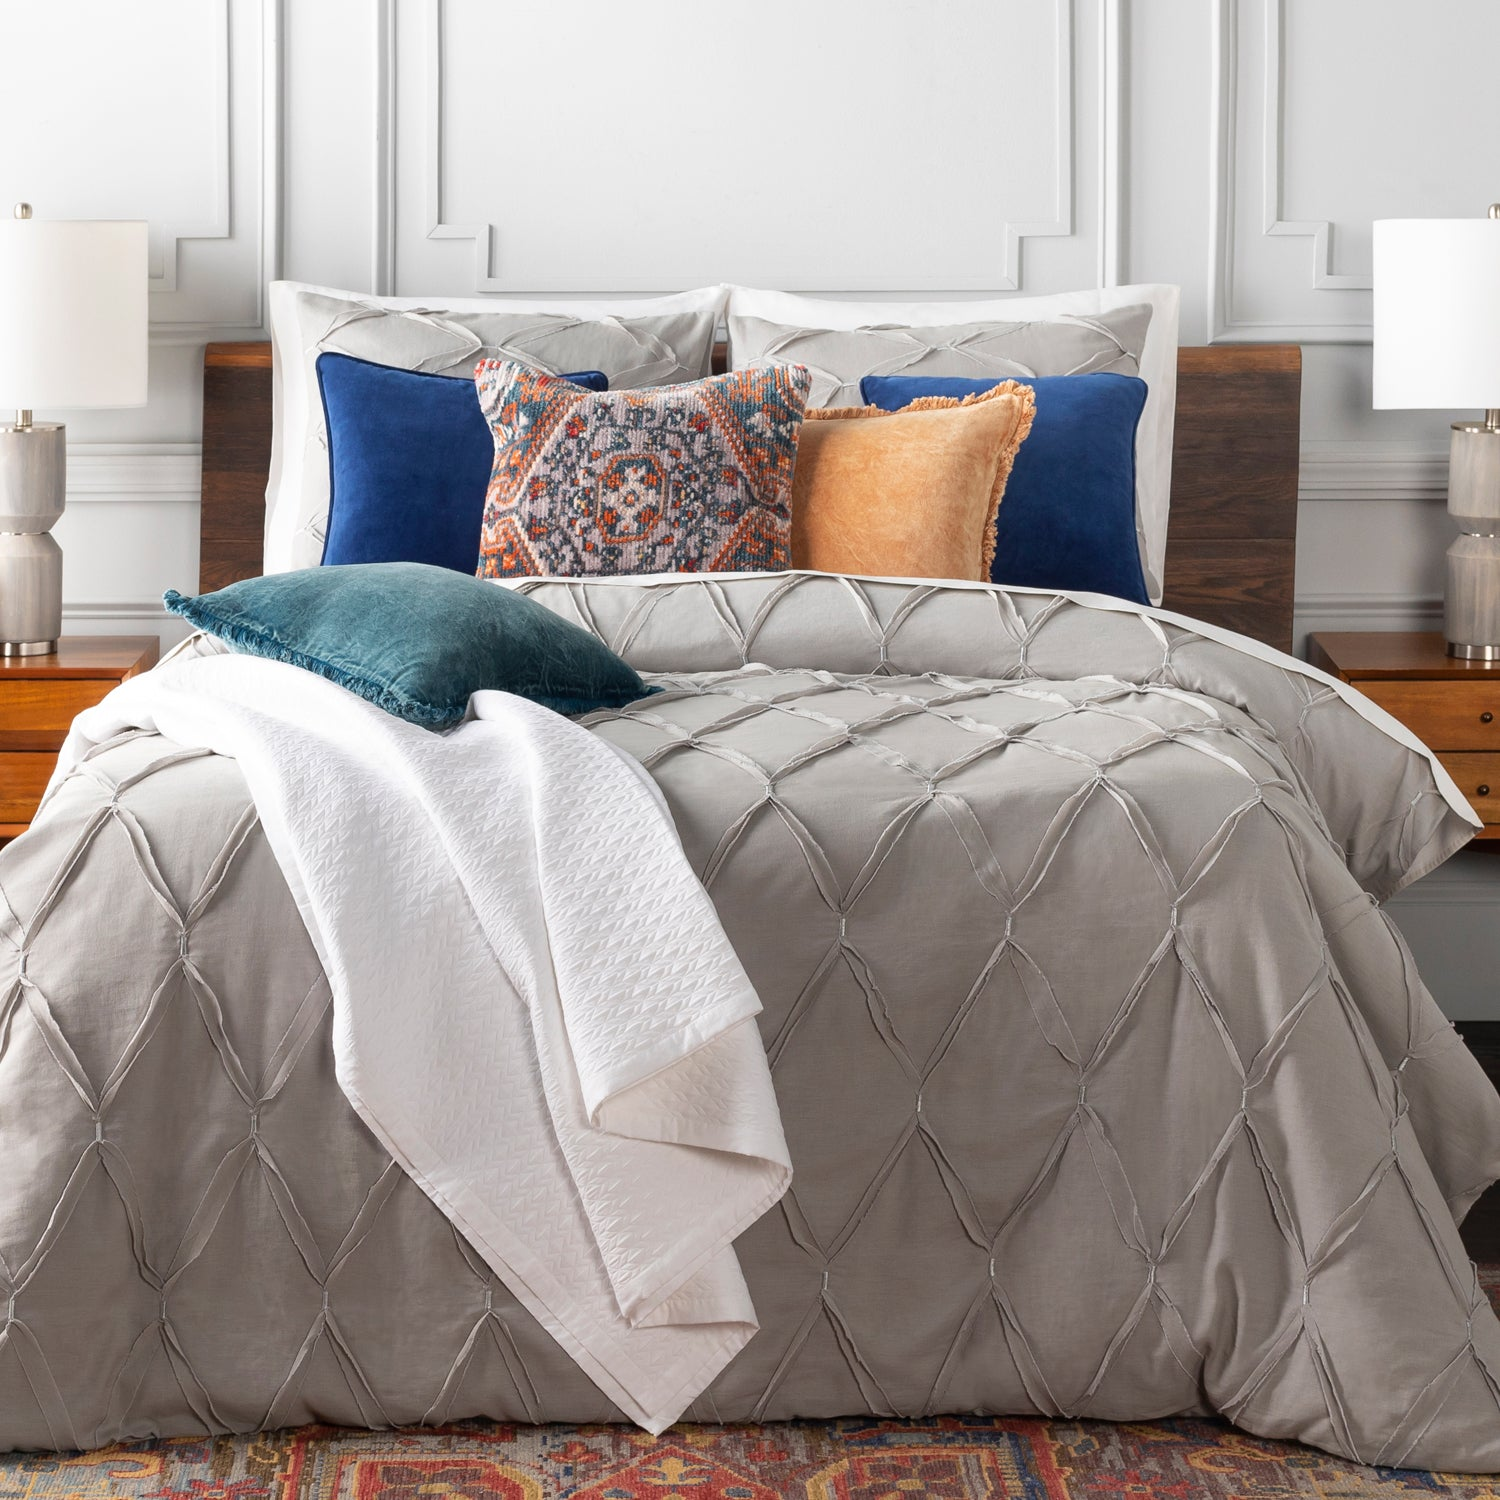 Presidents Day Bedding Sale